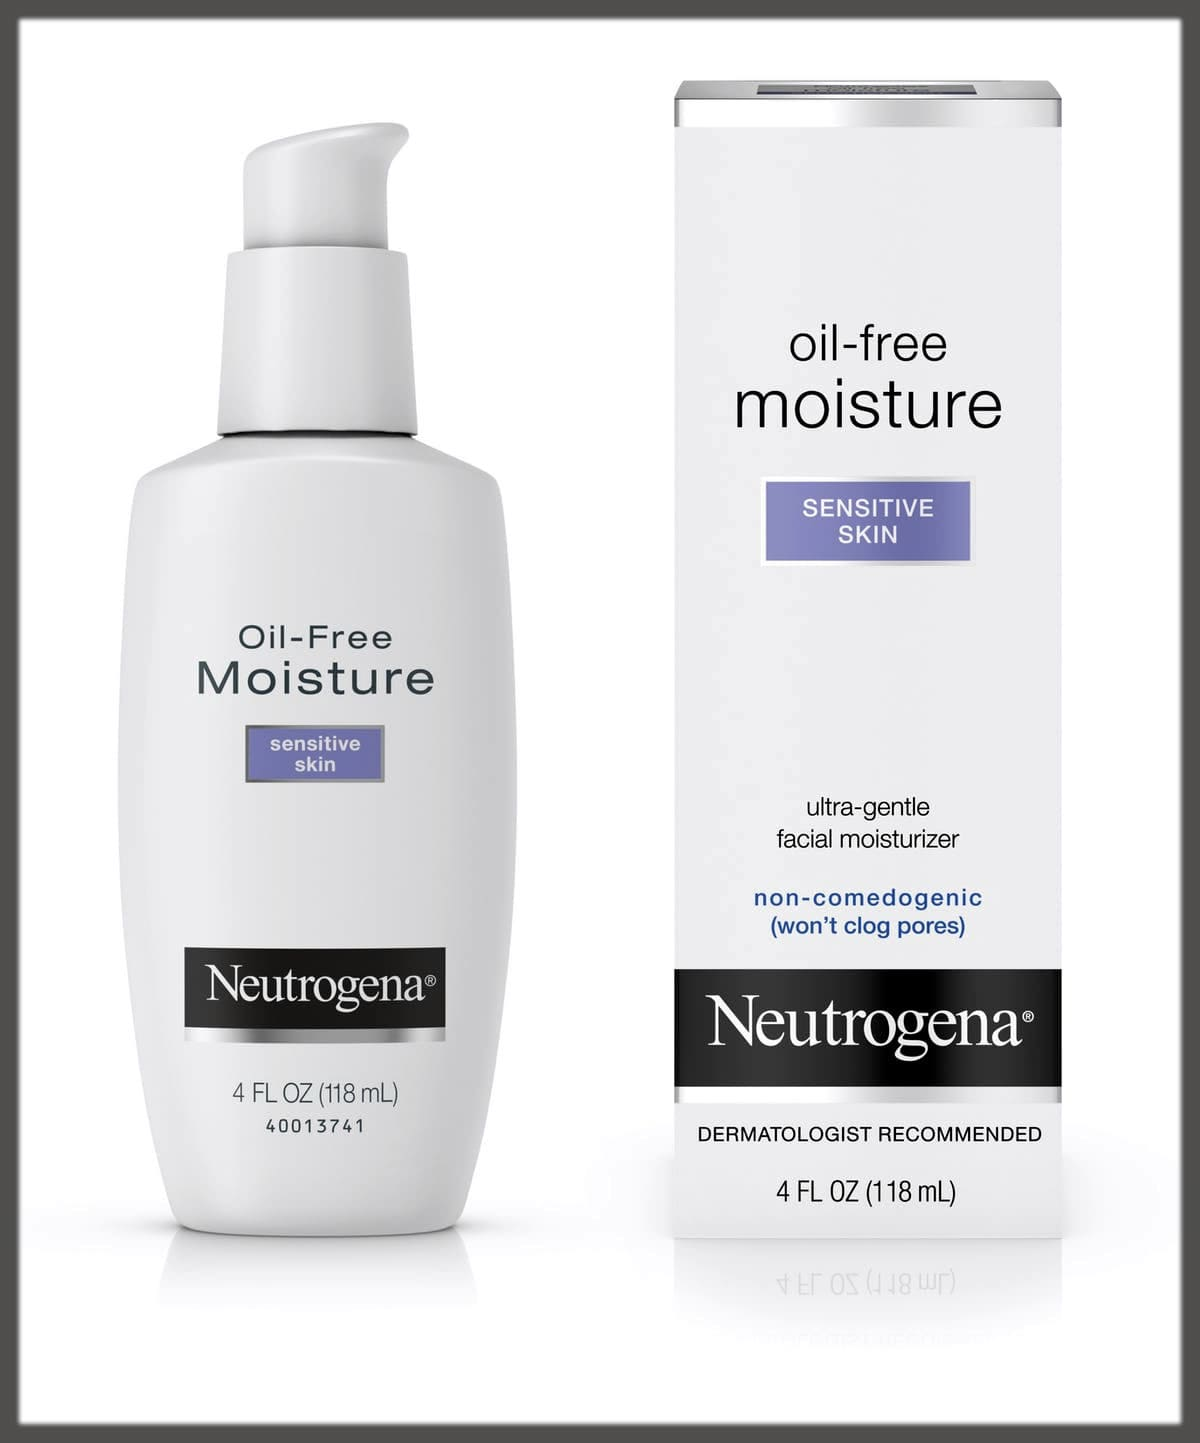 Oil-Free Moisturizer for summer